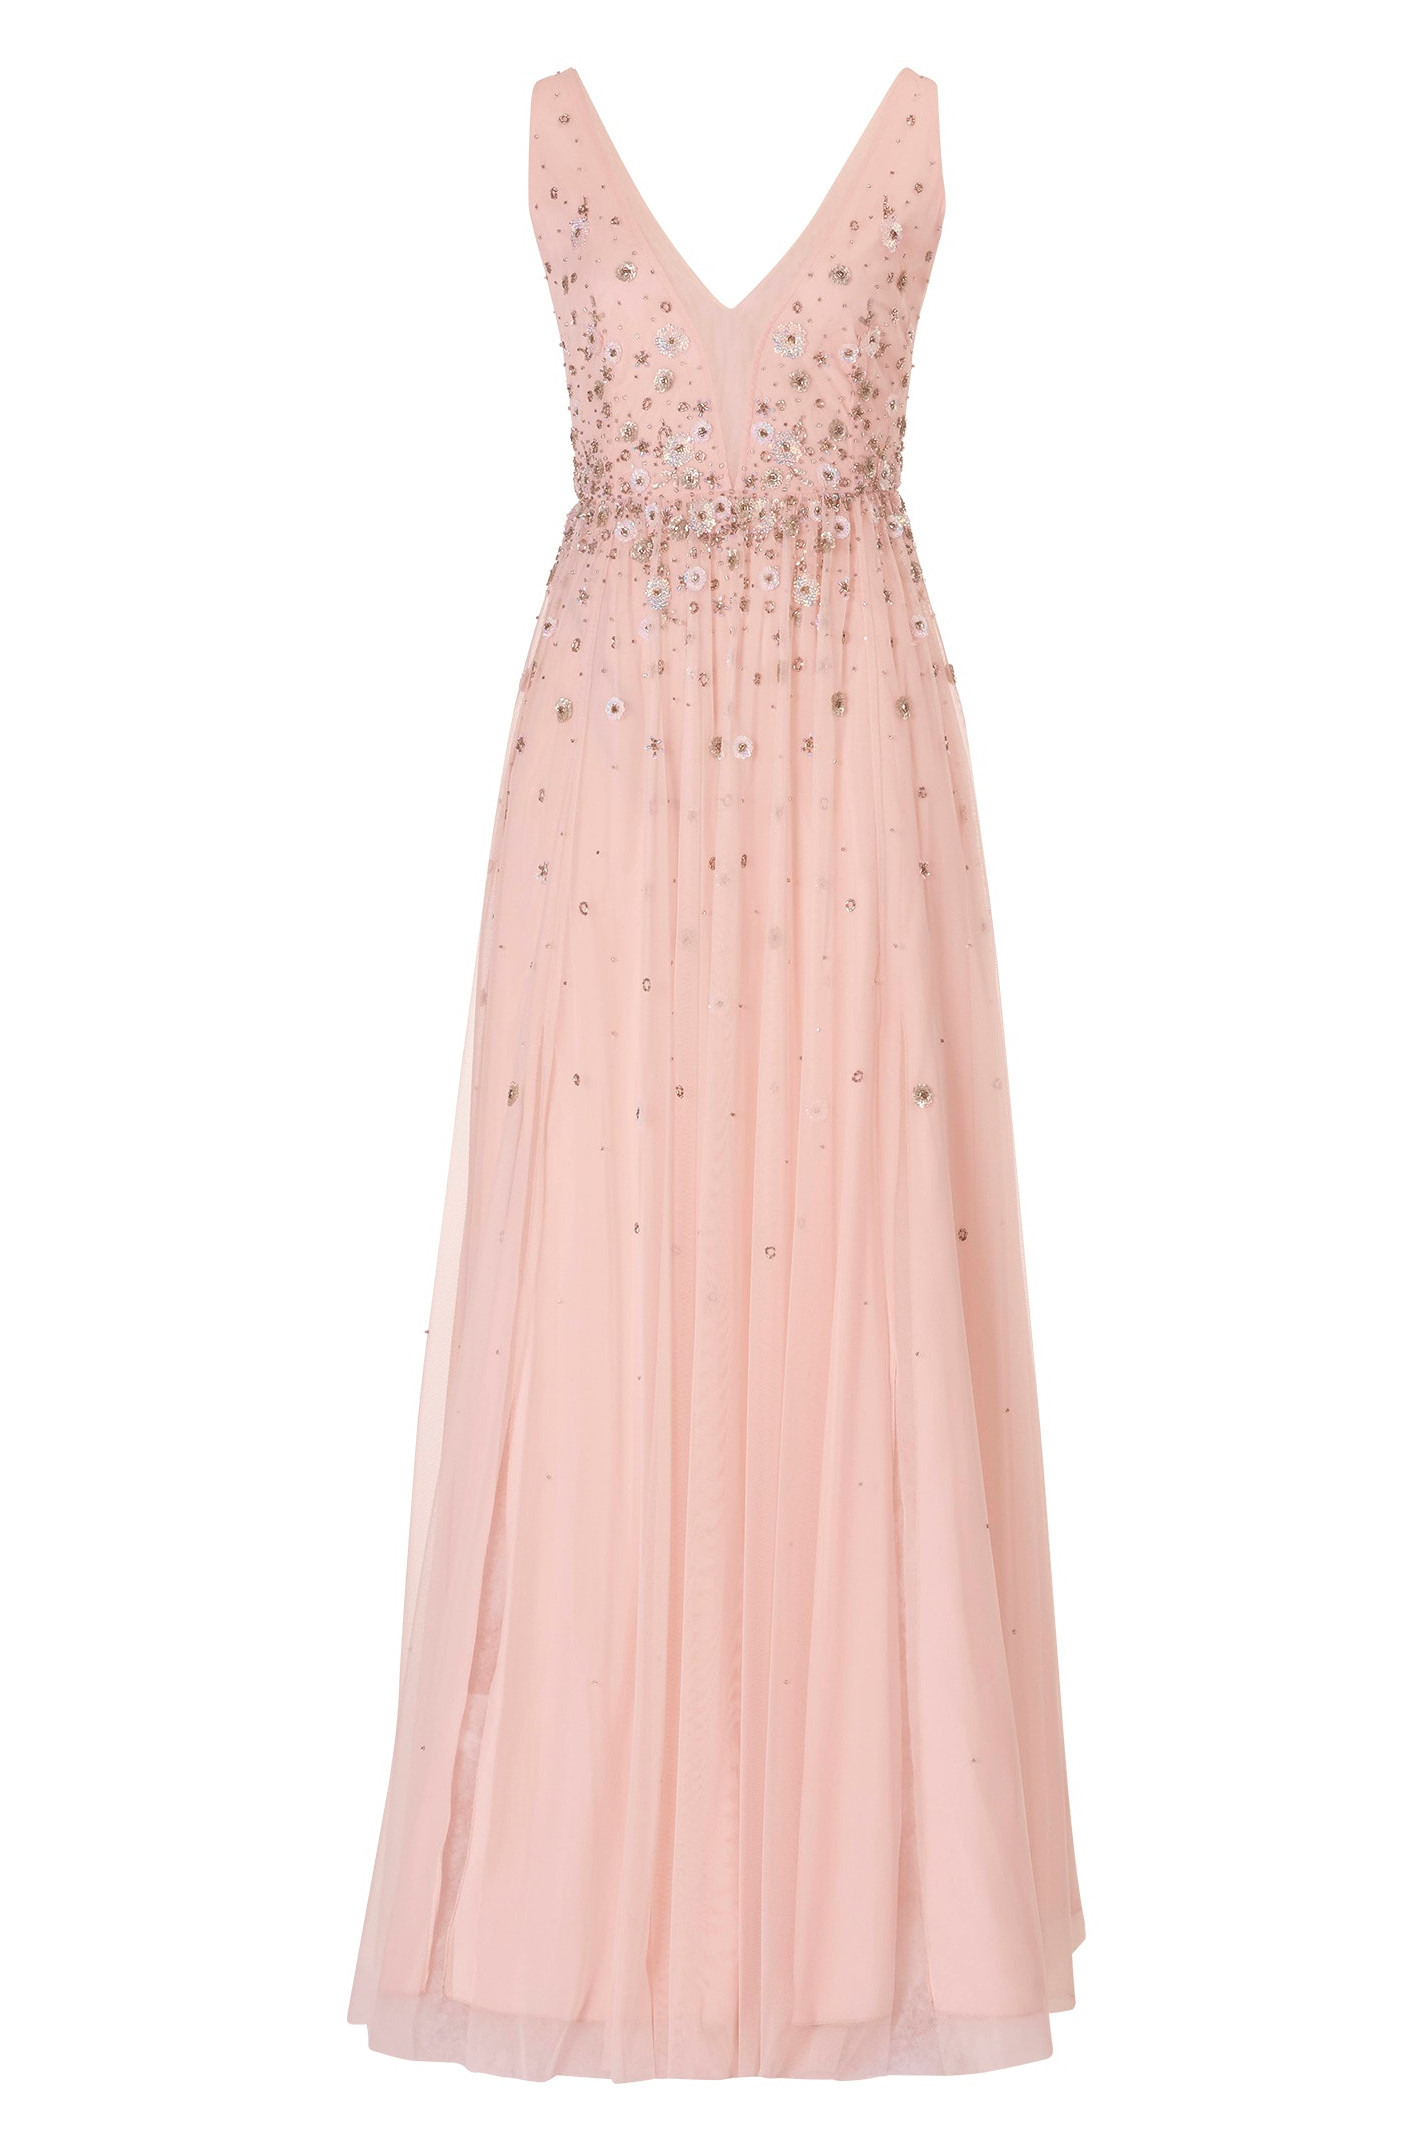 Formal Luxus Vera Mont Abendkleid StylishDesigner Luxurius Vera Mont Abendkleid für 2019